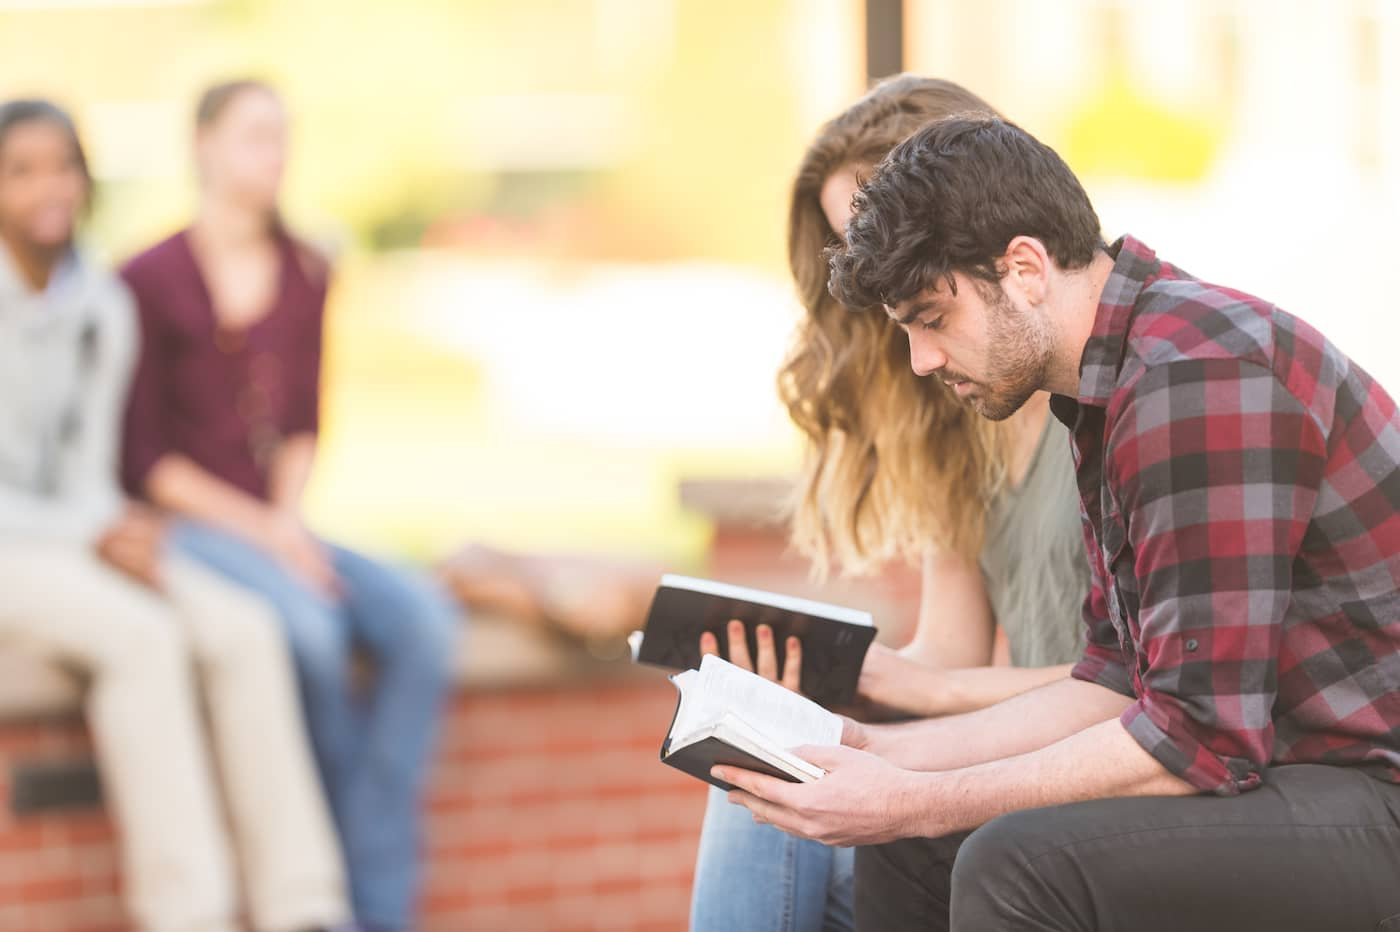 The Top Christian Colleges for a Counseling Degree